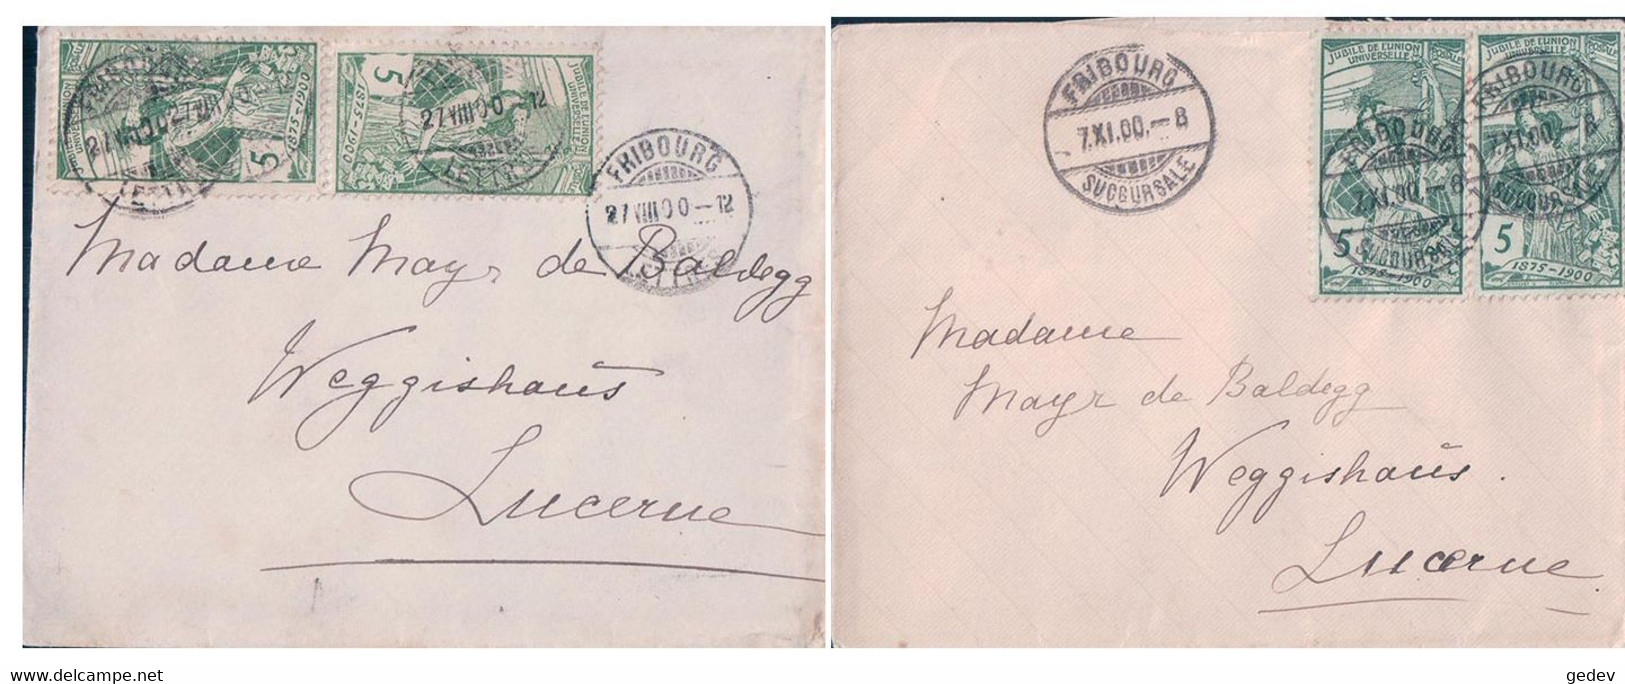 Suisse 2 Petites Lettres Timbres UPU 5 Ct, Fribourg - Lucerne (7.11, 27.8.1900) 9x12 - Covers & Documents